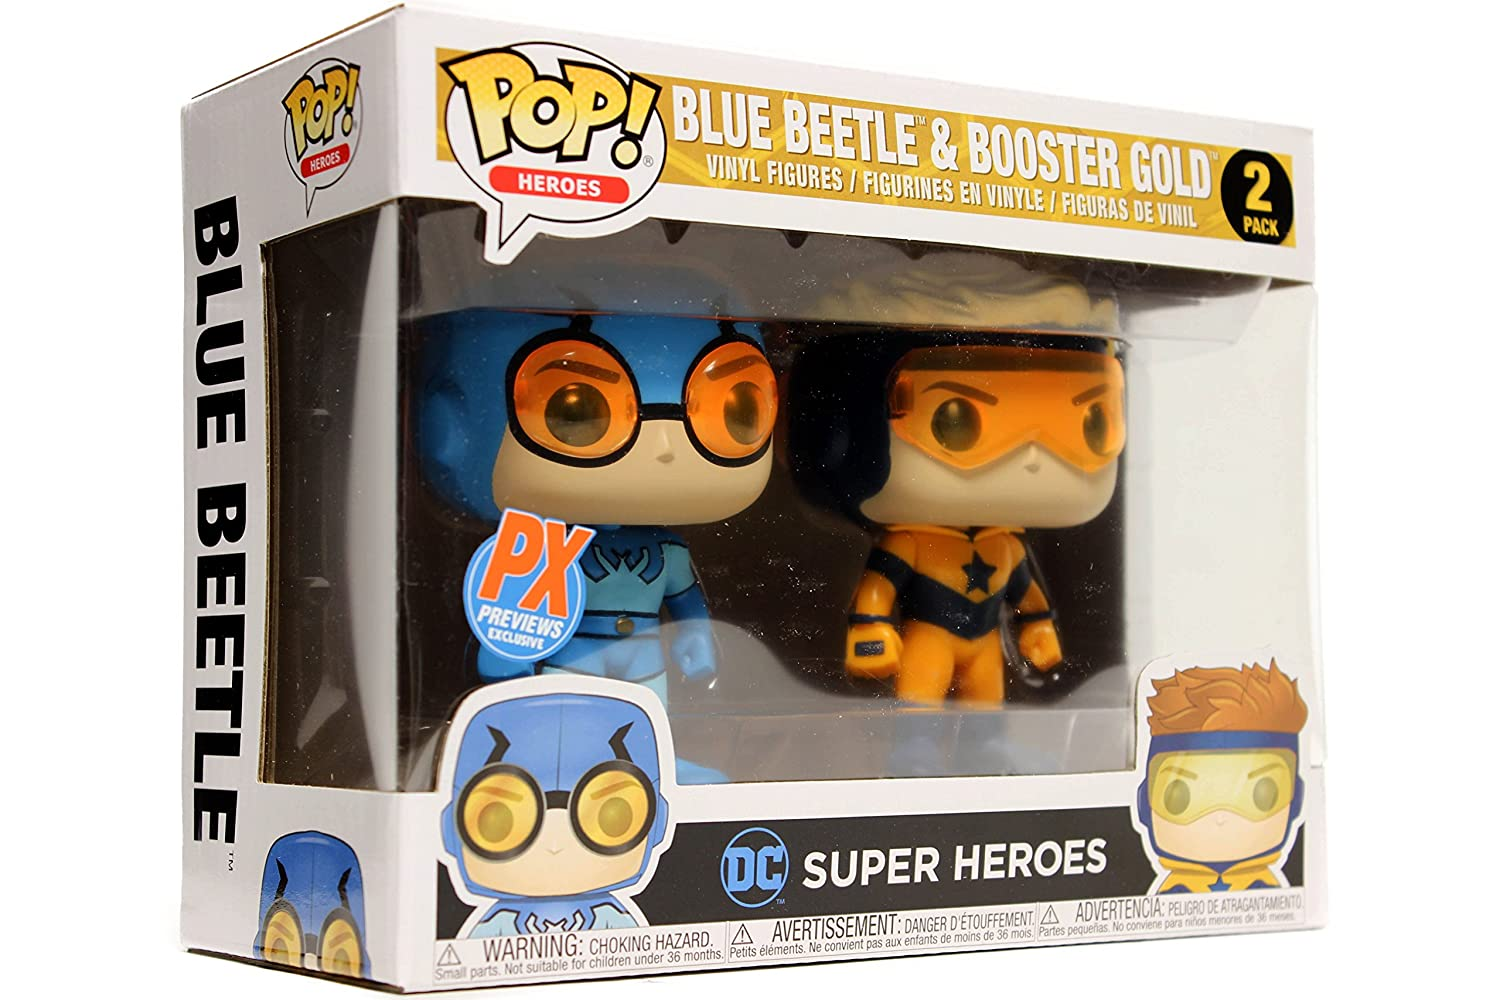 Funko Pop Dc Heroes Booster Gold And Blue Beetle 2 Bott Jl Cyborg Pack Previews Exclusive Vinyl Figure Bundled With Box Protector Case Toys Games